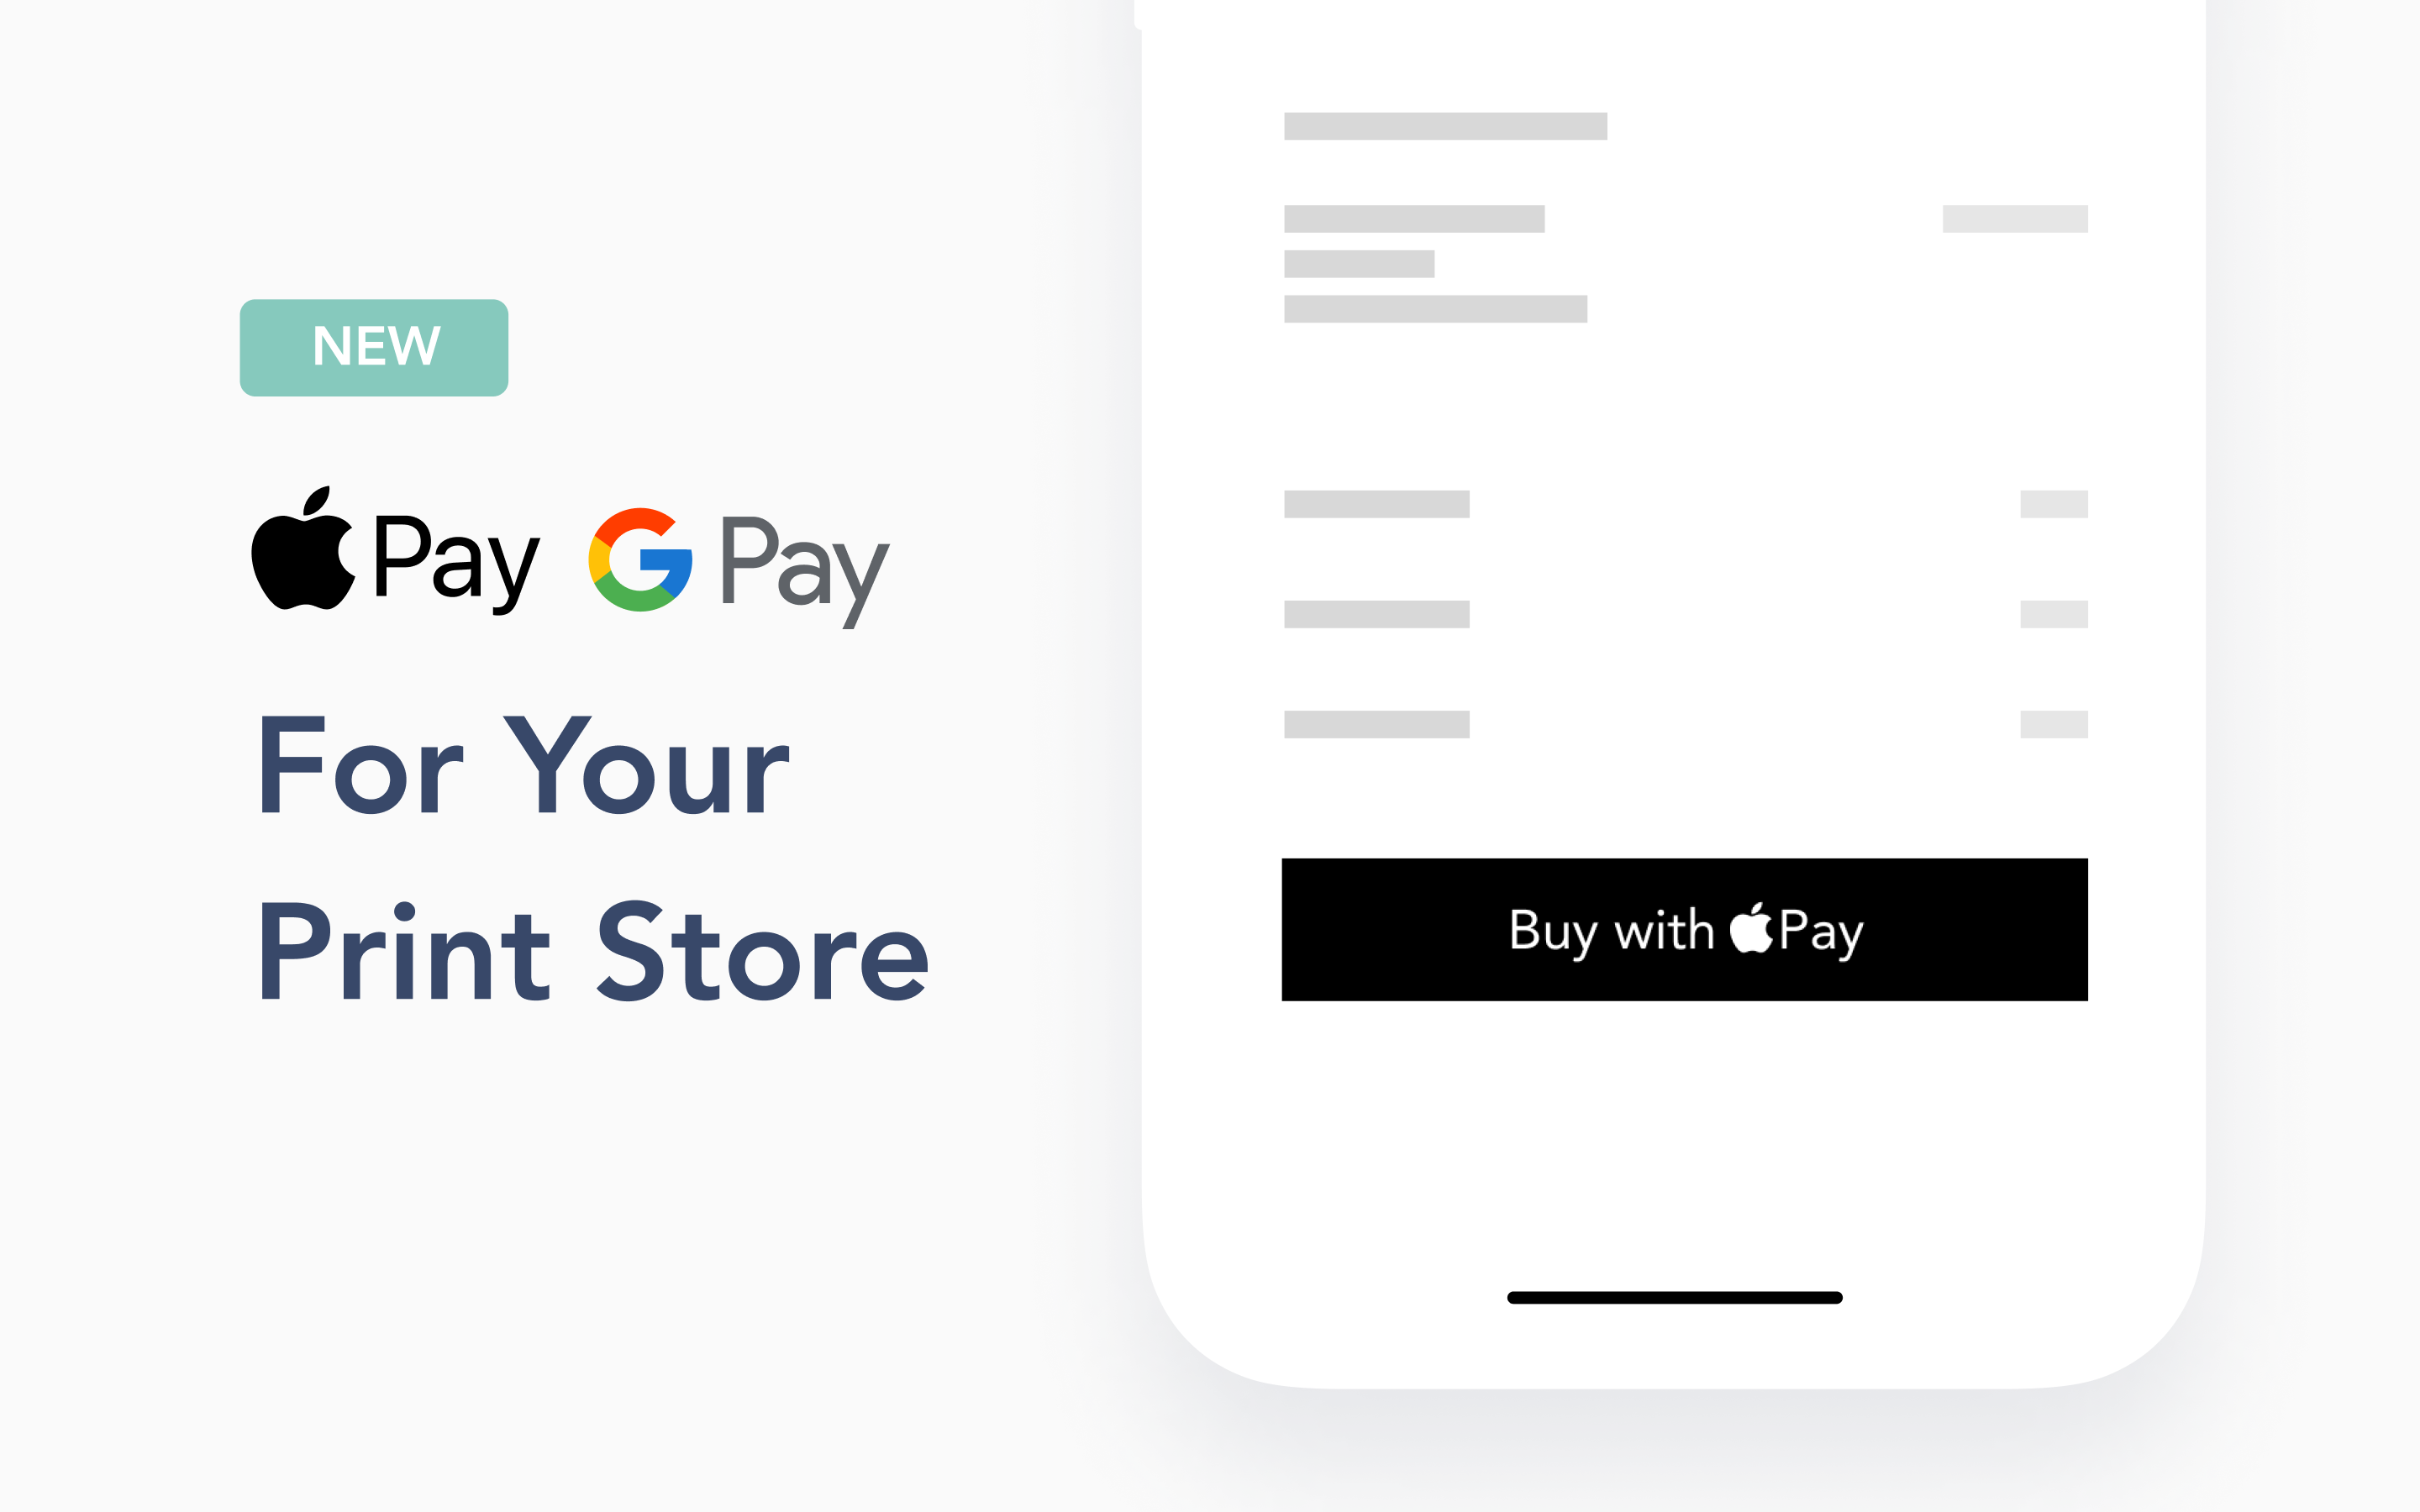 The easiest way for photographers to sell photos online just got easier! Your clients can now checkout with a touch using Apple Pay or Google Pay directly in your Store.